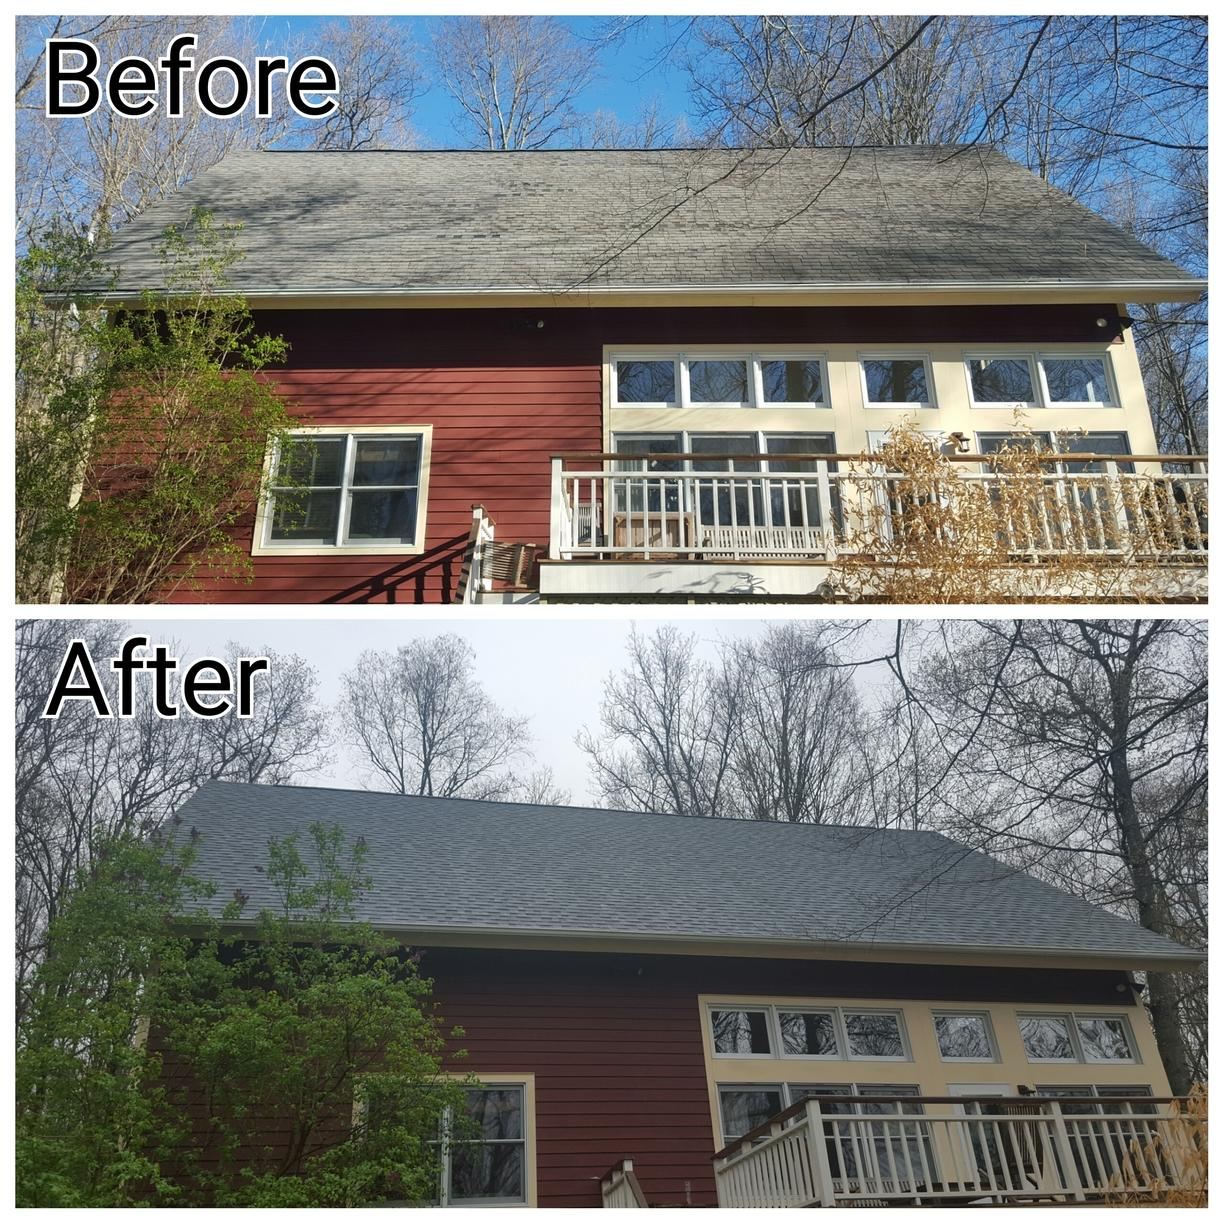 Carmel, NY New Roof Replacement - After Photo